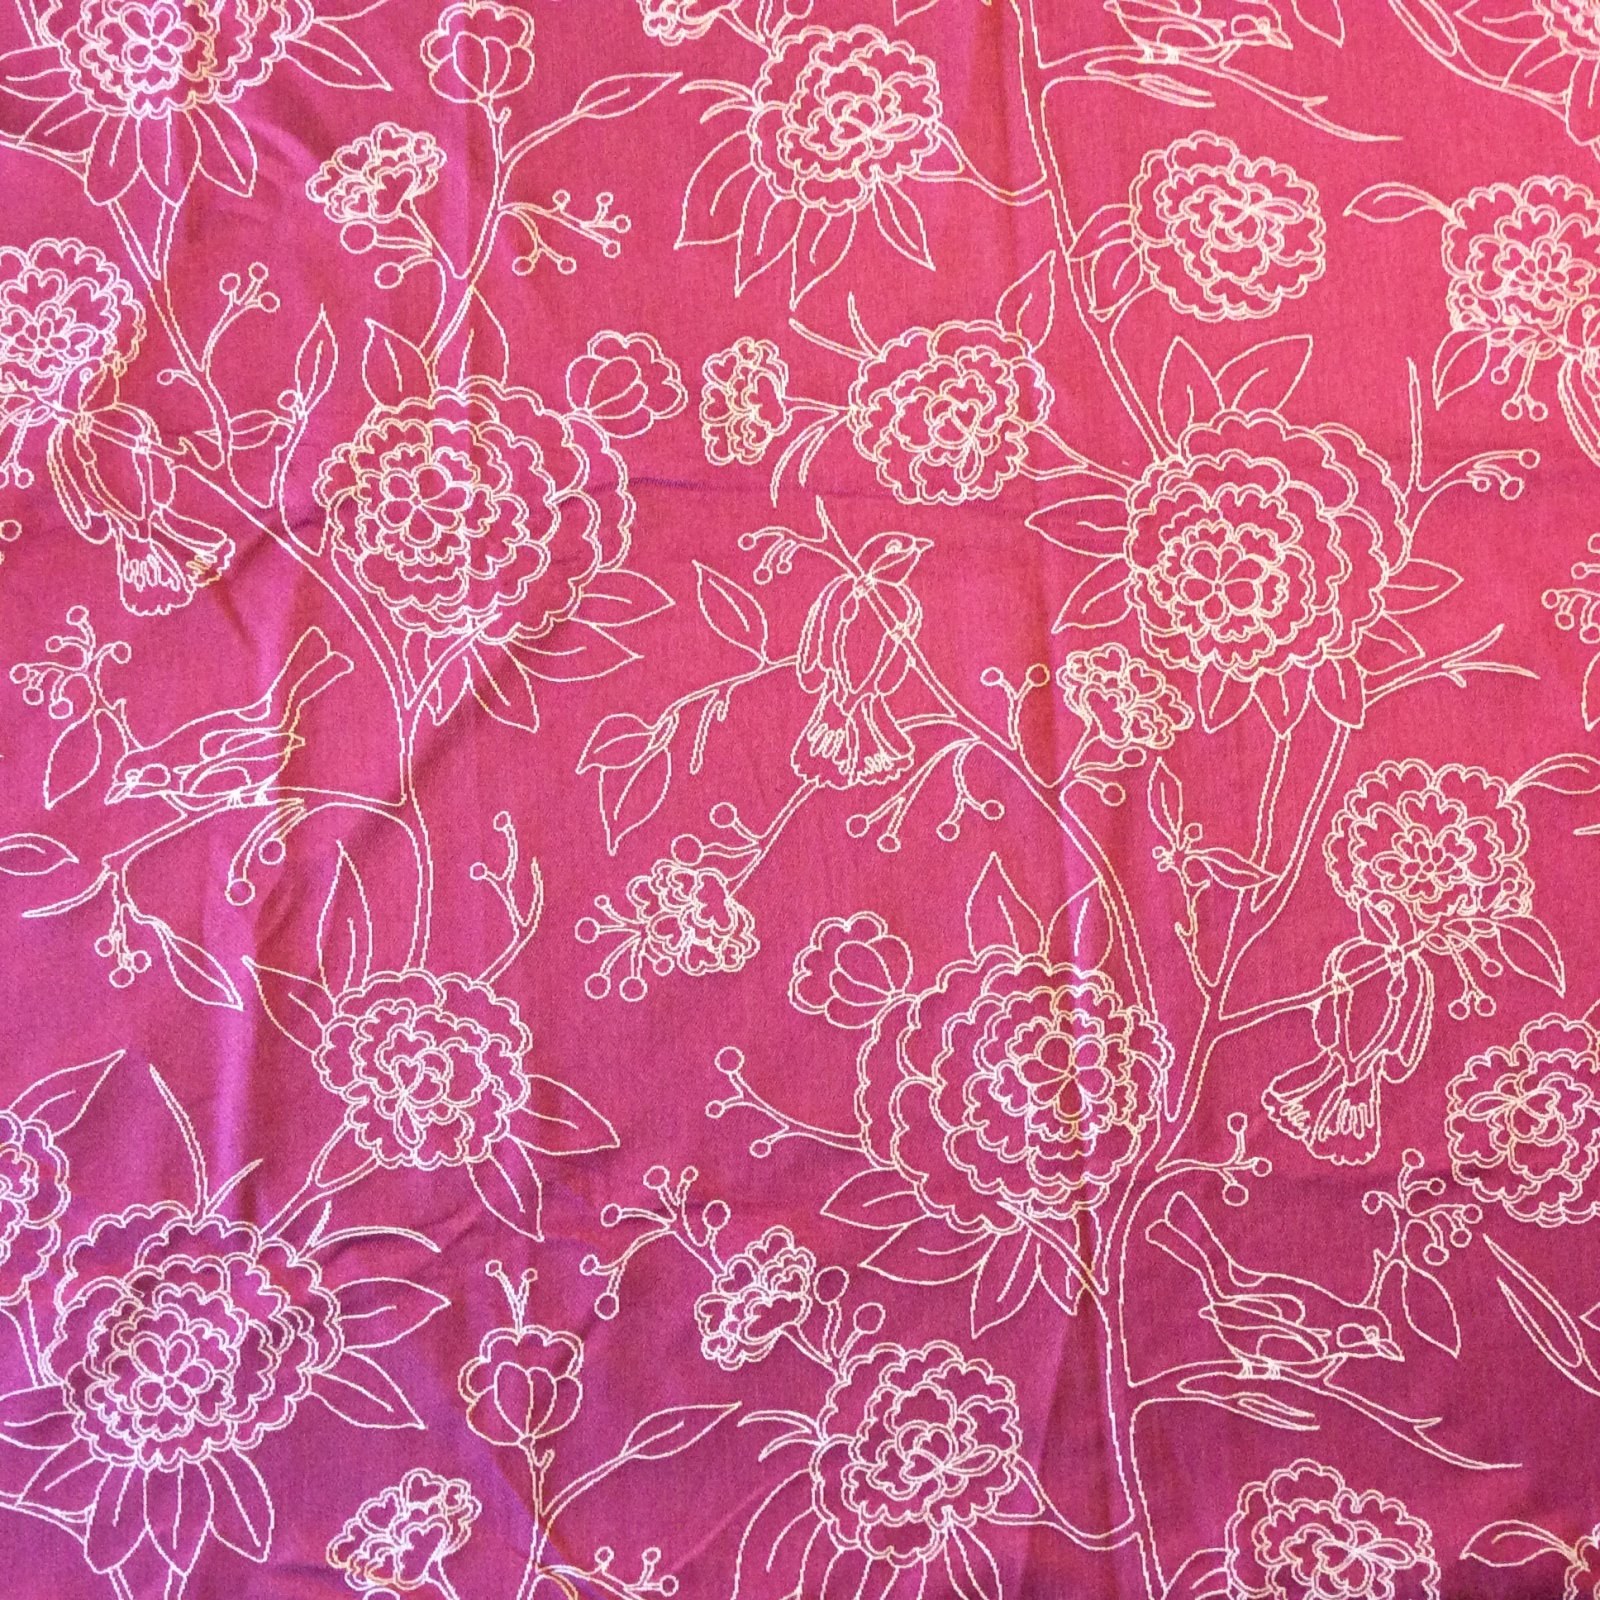 98 Pink Home Decor Fabric Nl223 Hot Pink Embroidered Sparrows